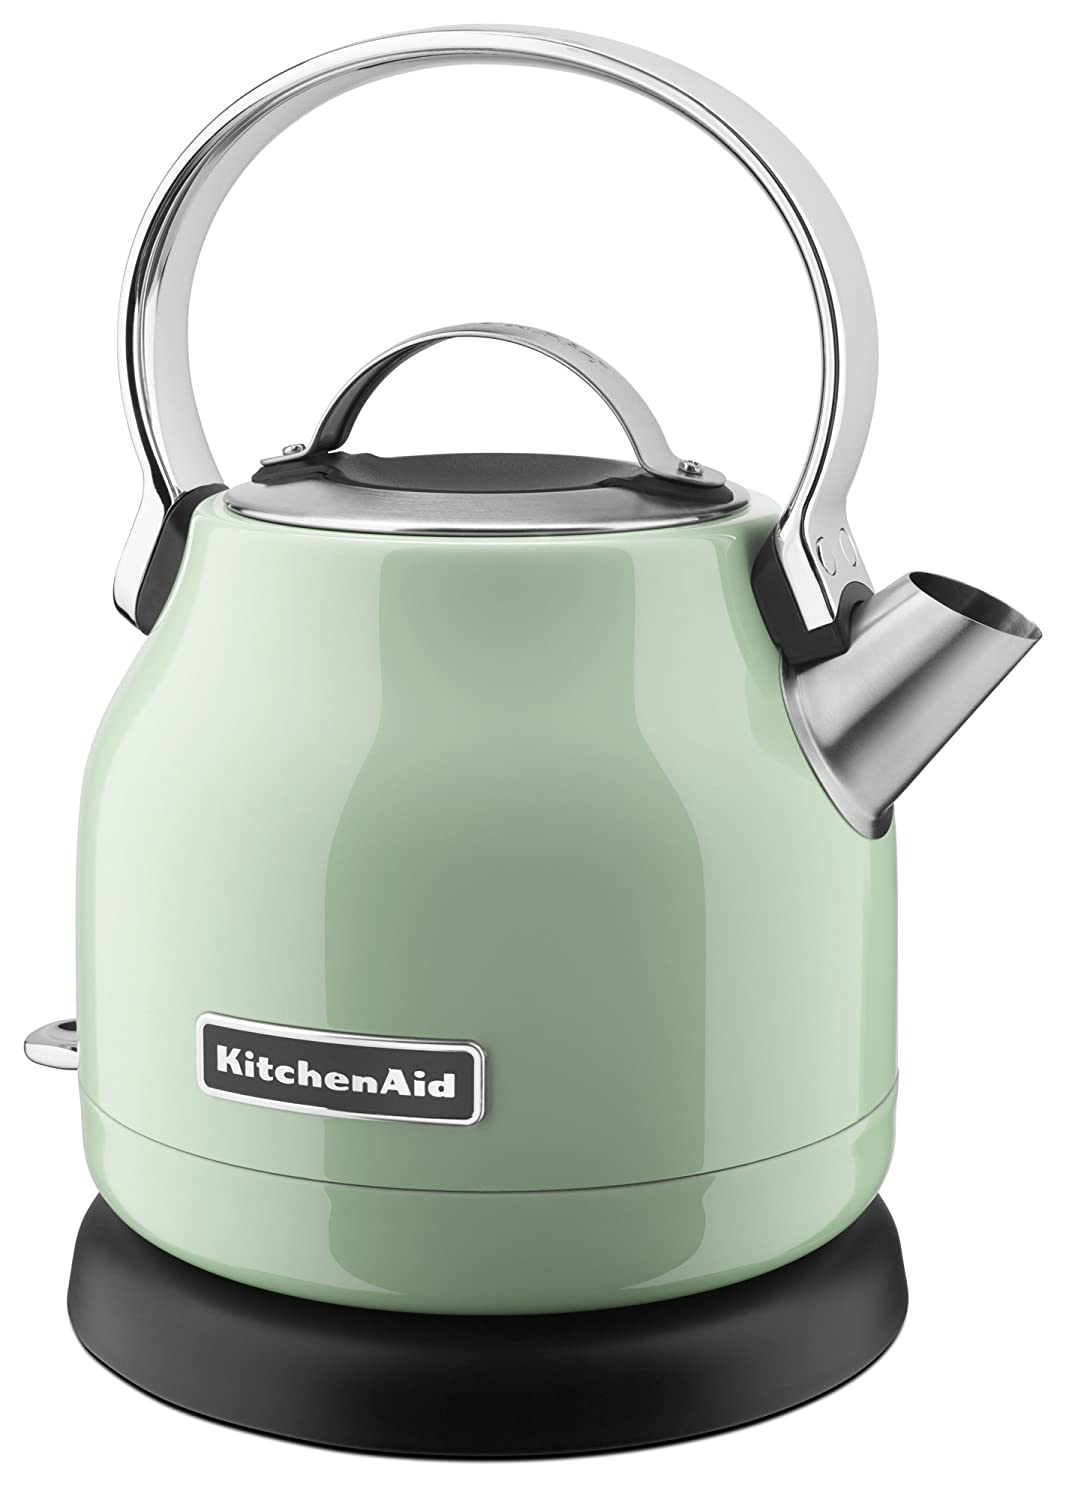 Kitchenaid 1 25 Liter Electric Kettle Pistachio Ebay